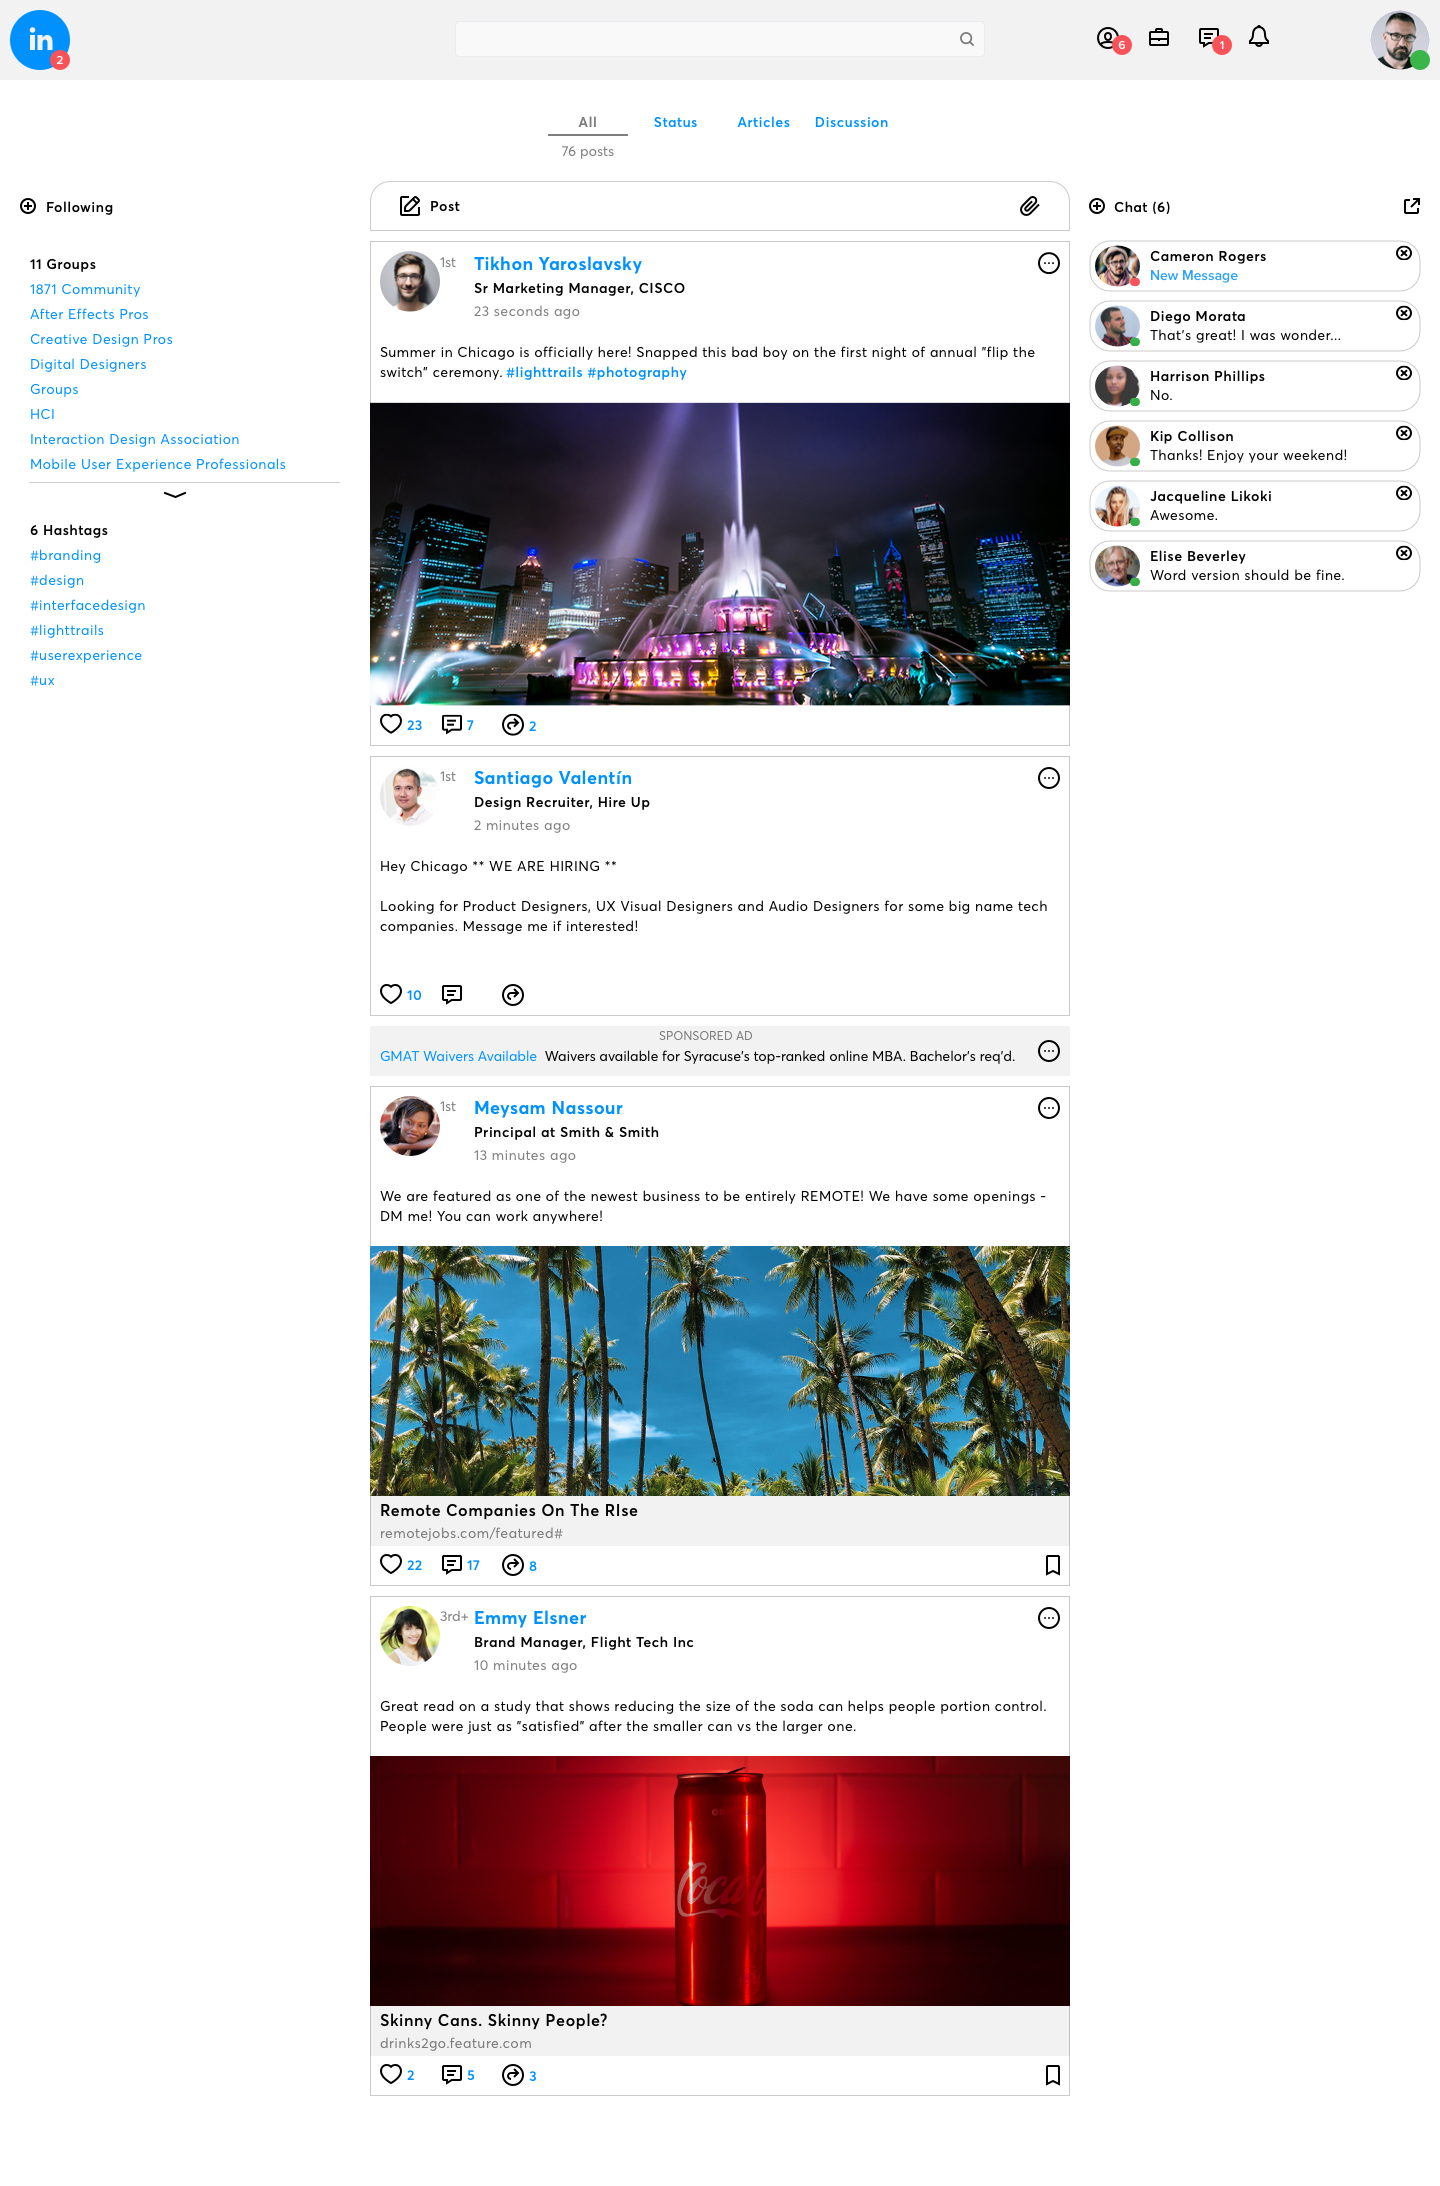 My 3 driving motivators  for this design: Content, Connections and Conversations. That's LinkedIn.  (Full Mock Here)